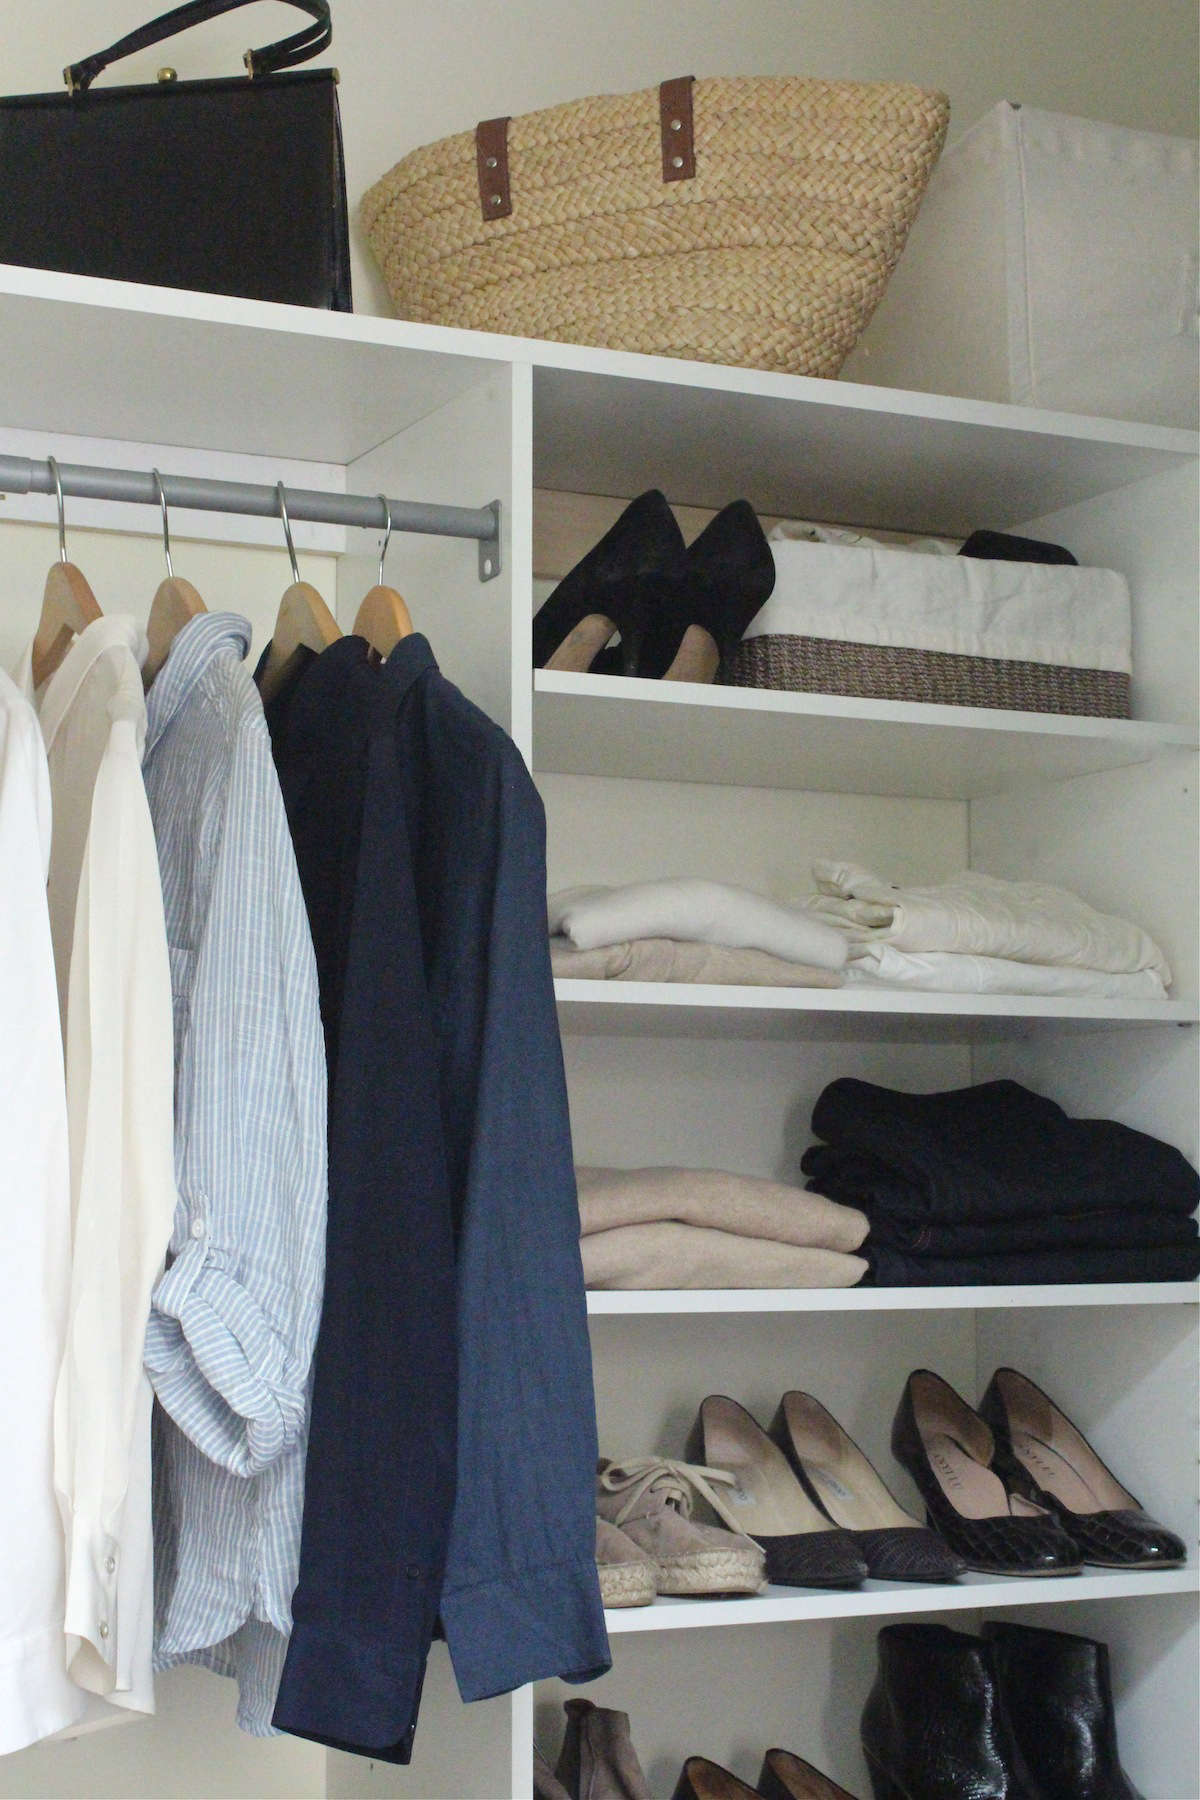 My edited closet. Photograph by Michelle Slatalla.